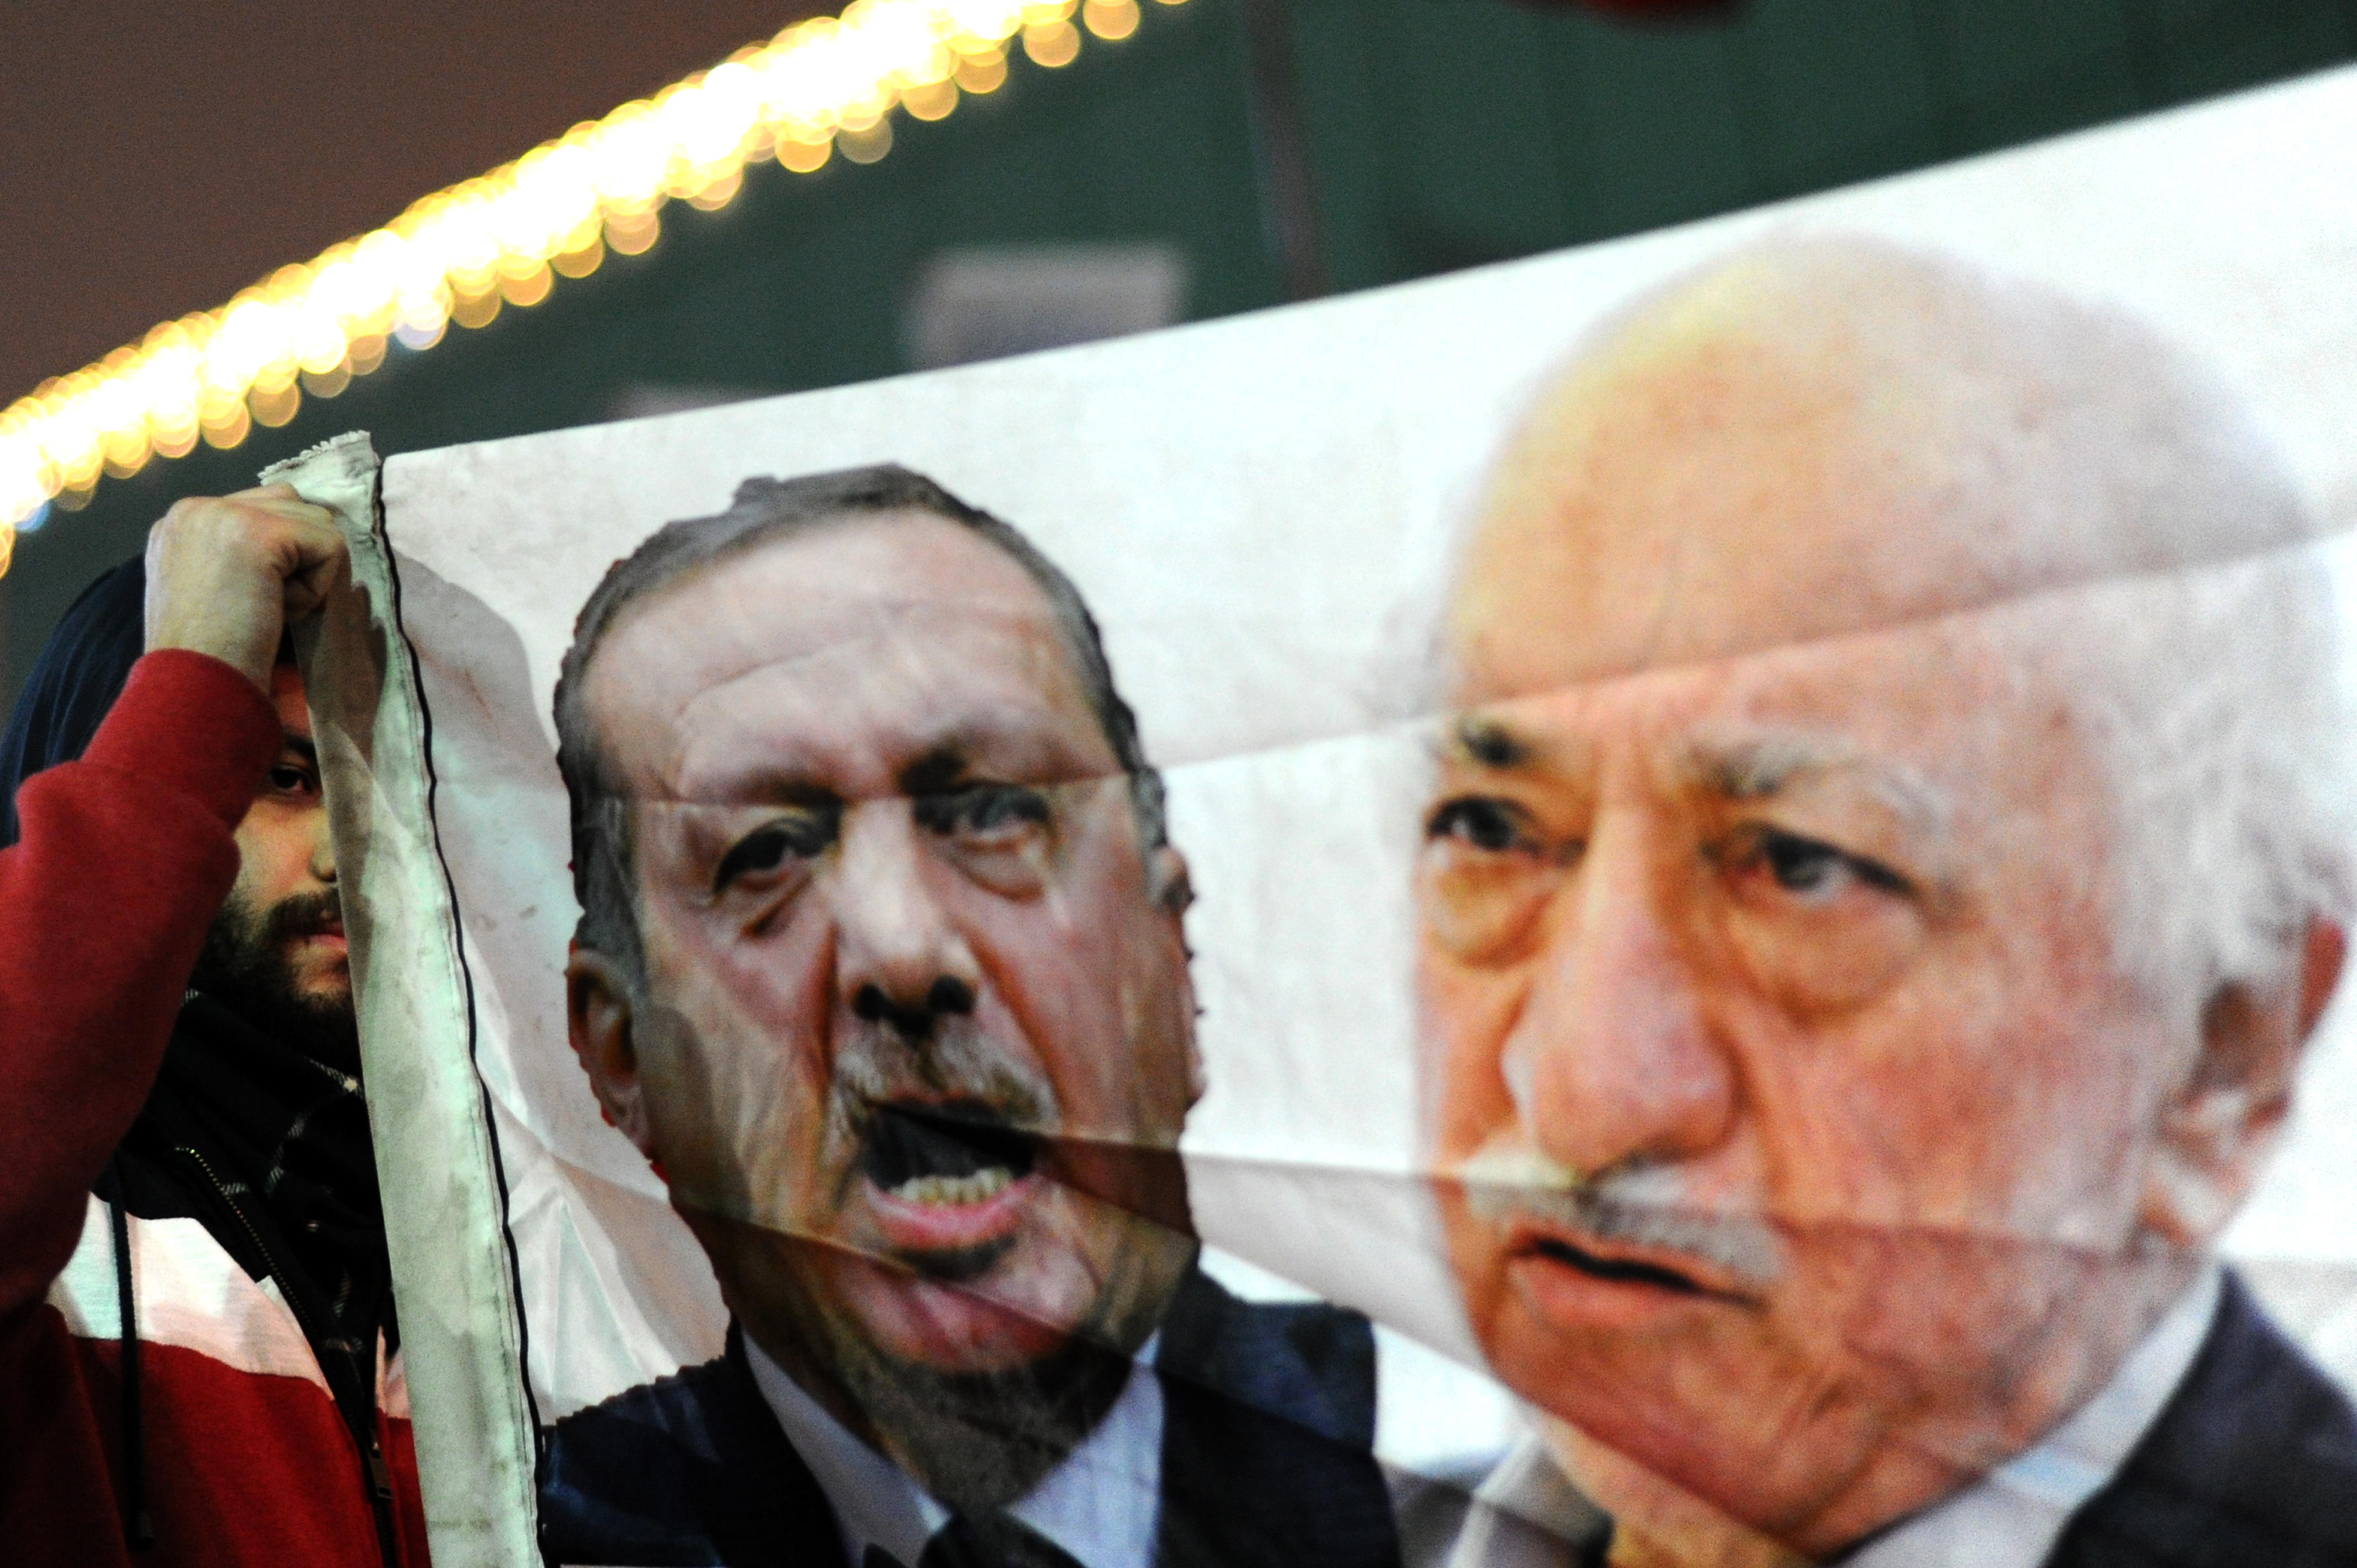 A Turkish protester (L) holds up a banner with pictures of Turkish Prime Minister Recep Tayyip Erdogan (C) and the United States-based Turkish cleric Fethullah Gulen (R) during a demonstration against goverment on December 30, 2013 in Istanbul.